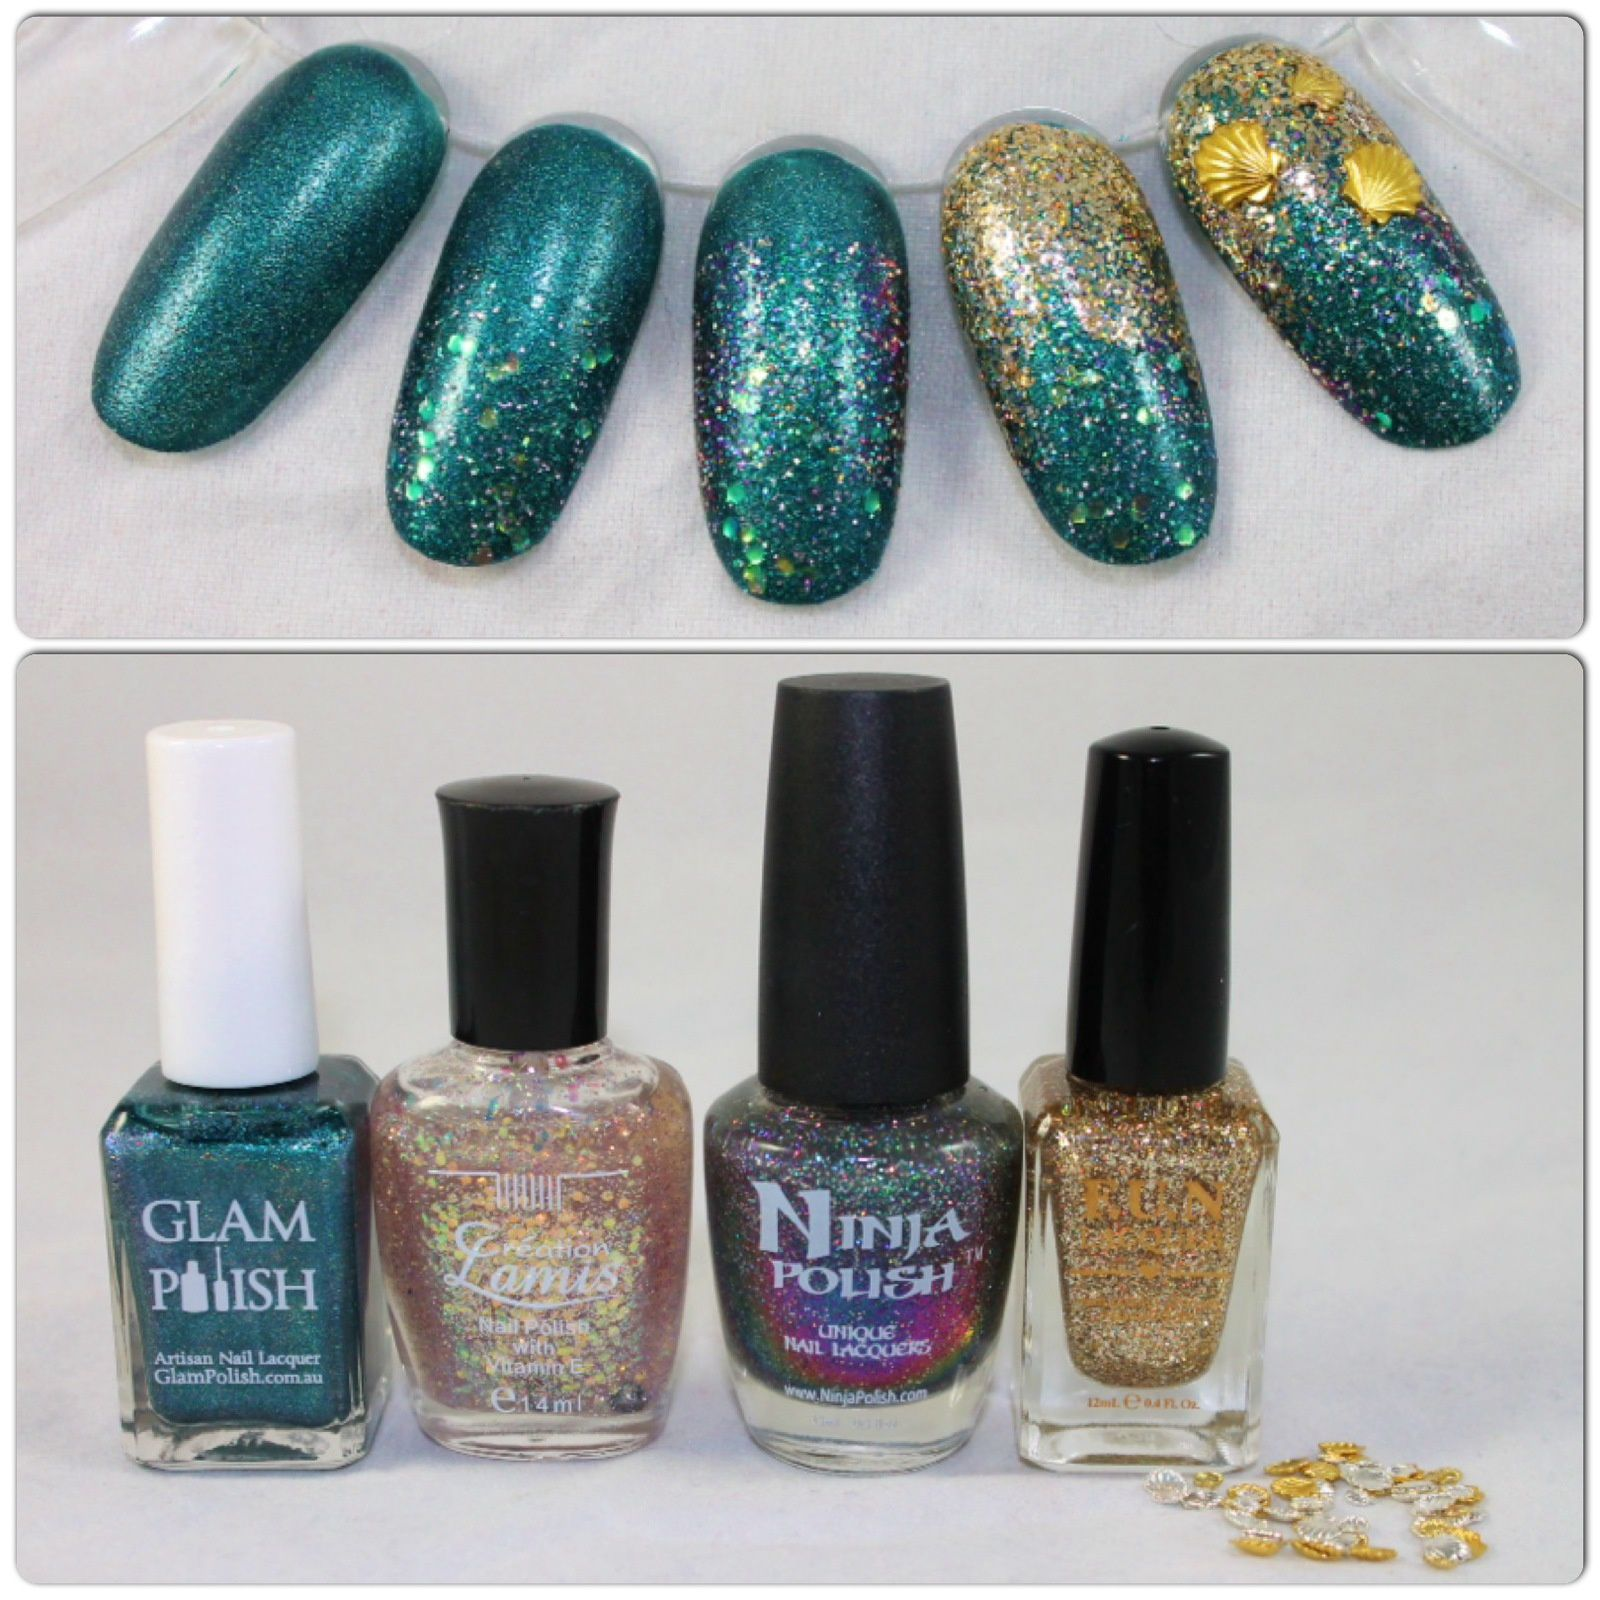 Essie Protein Base Coat / Glam Polish Paranormal / Creation Lamis Iridescent Glitter / Ninja Polish Nebula / FUN Lacquer King / Born Pretty Store Seashell studs / Poshe Top Coat